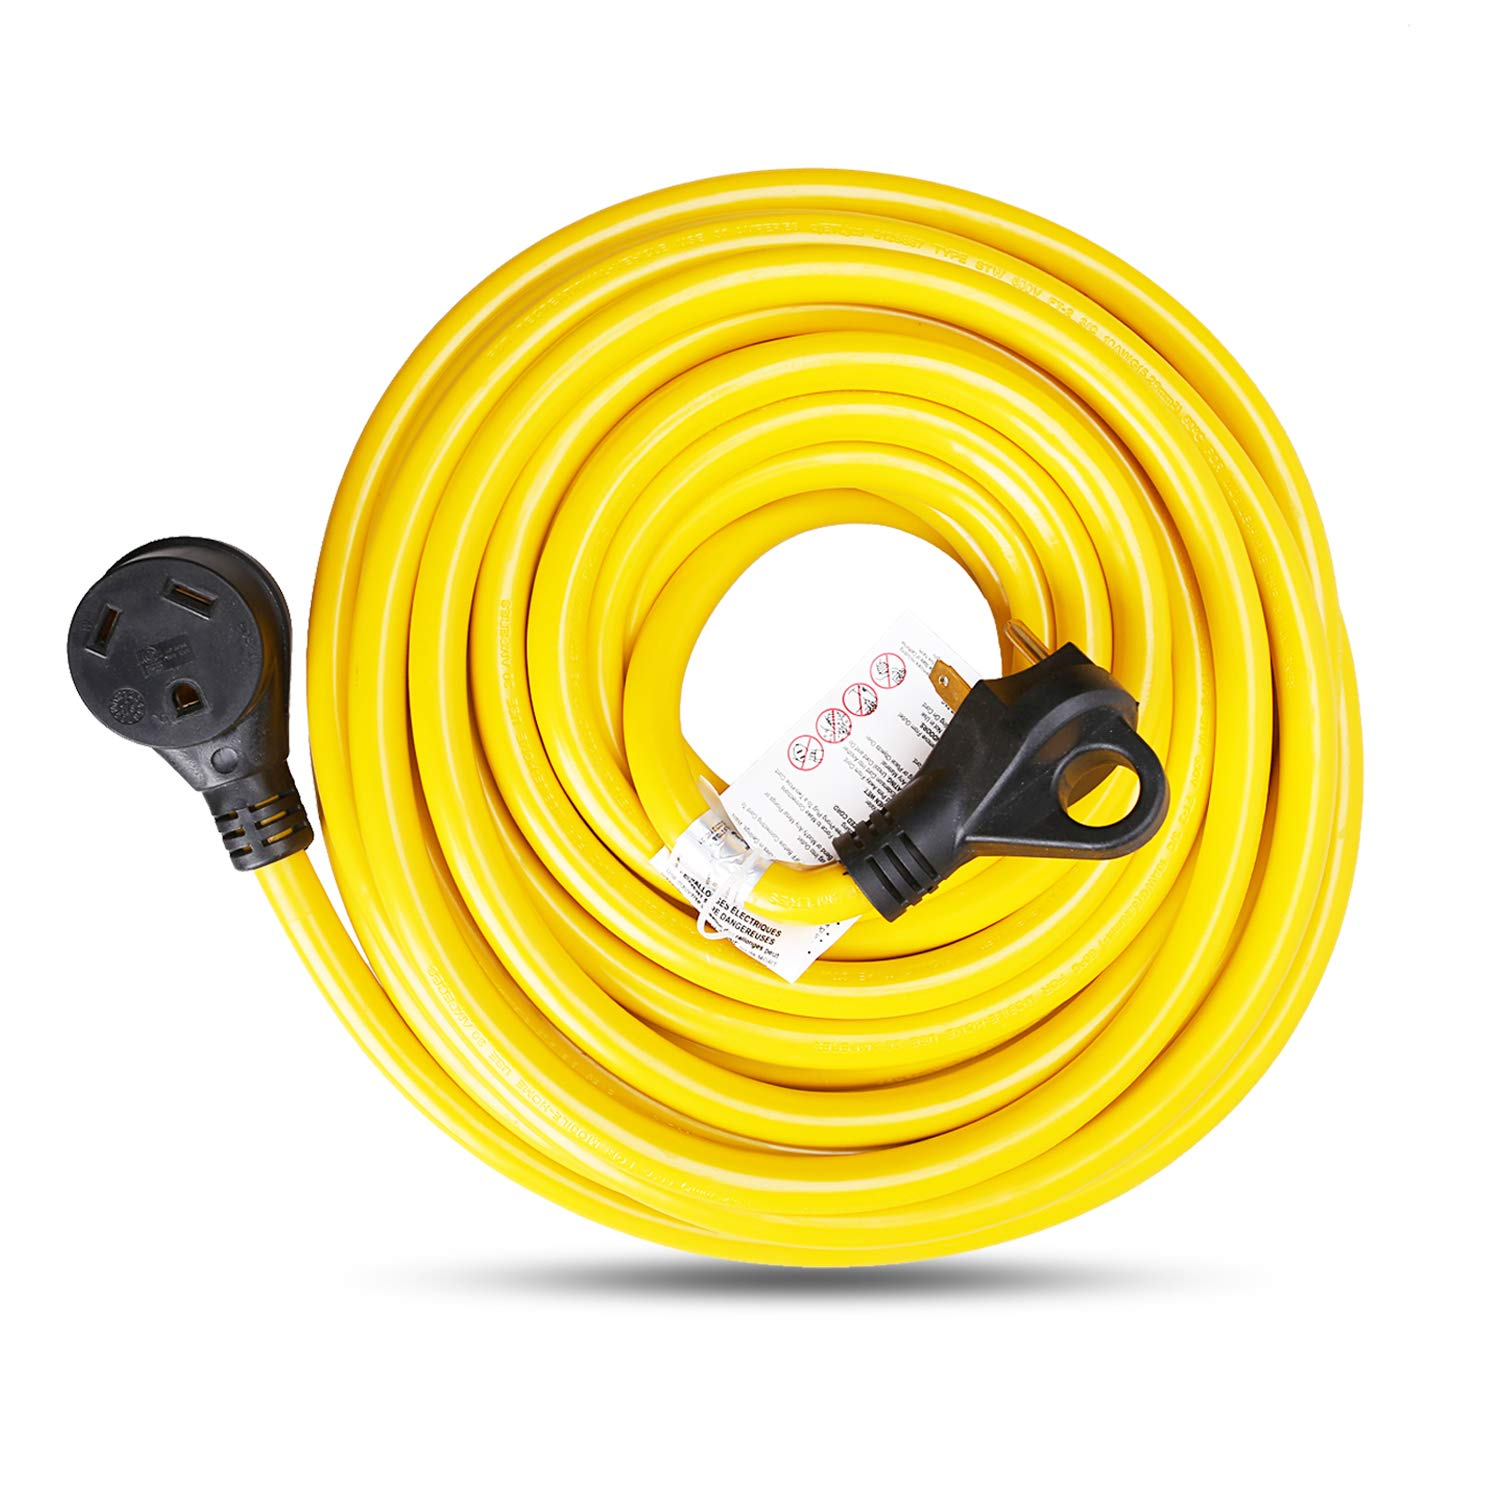 EPICORD RV Extension Cord 30Amp Molded Connector with Grip Handle Plug, 25FT, 125V